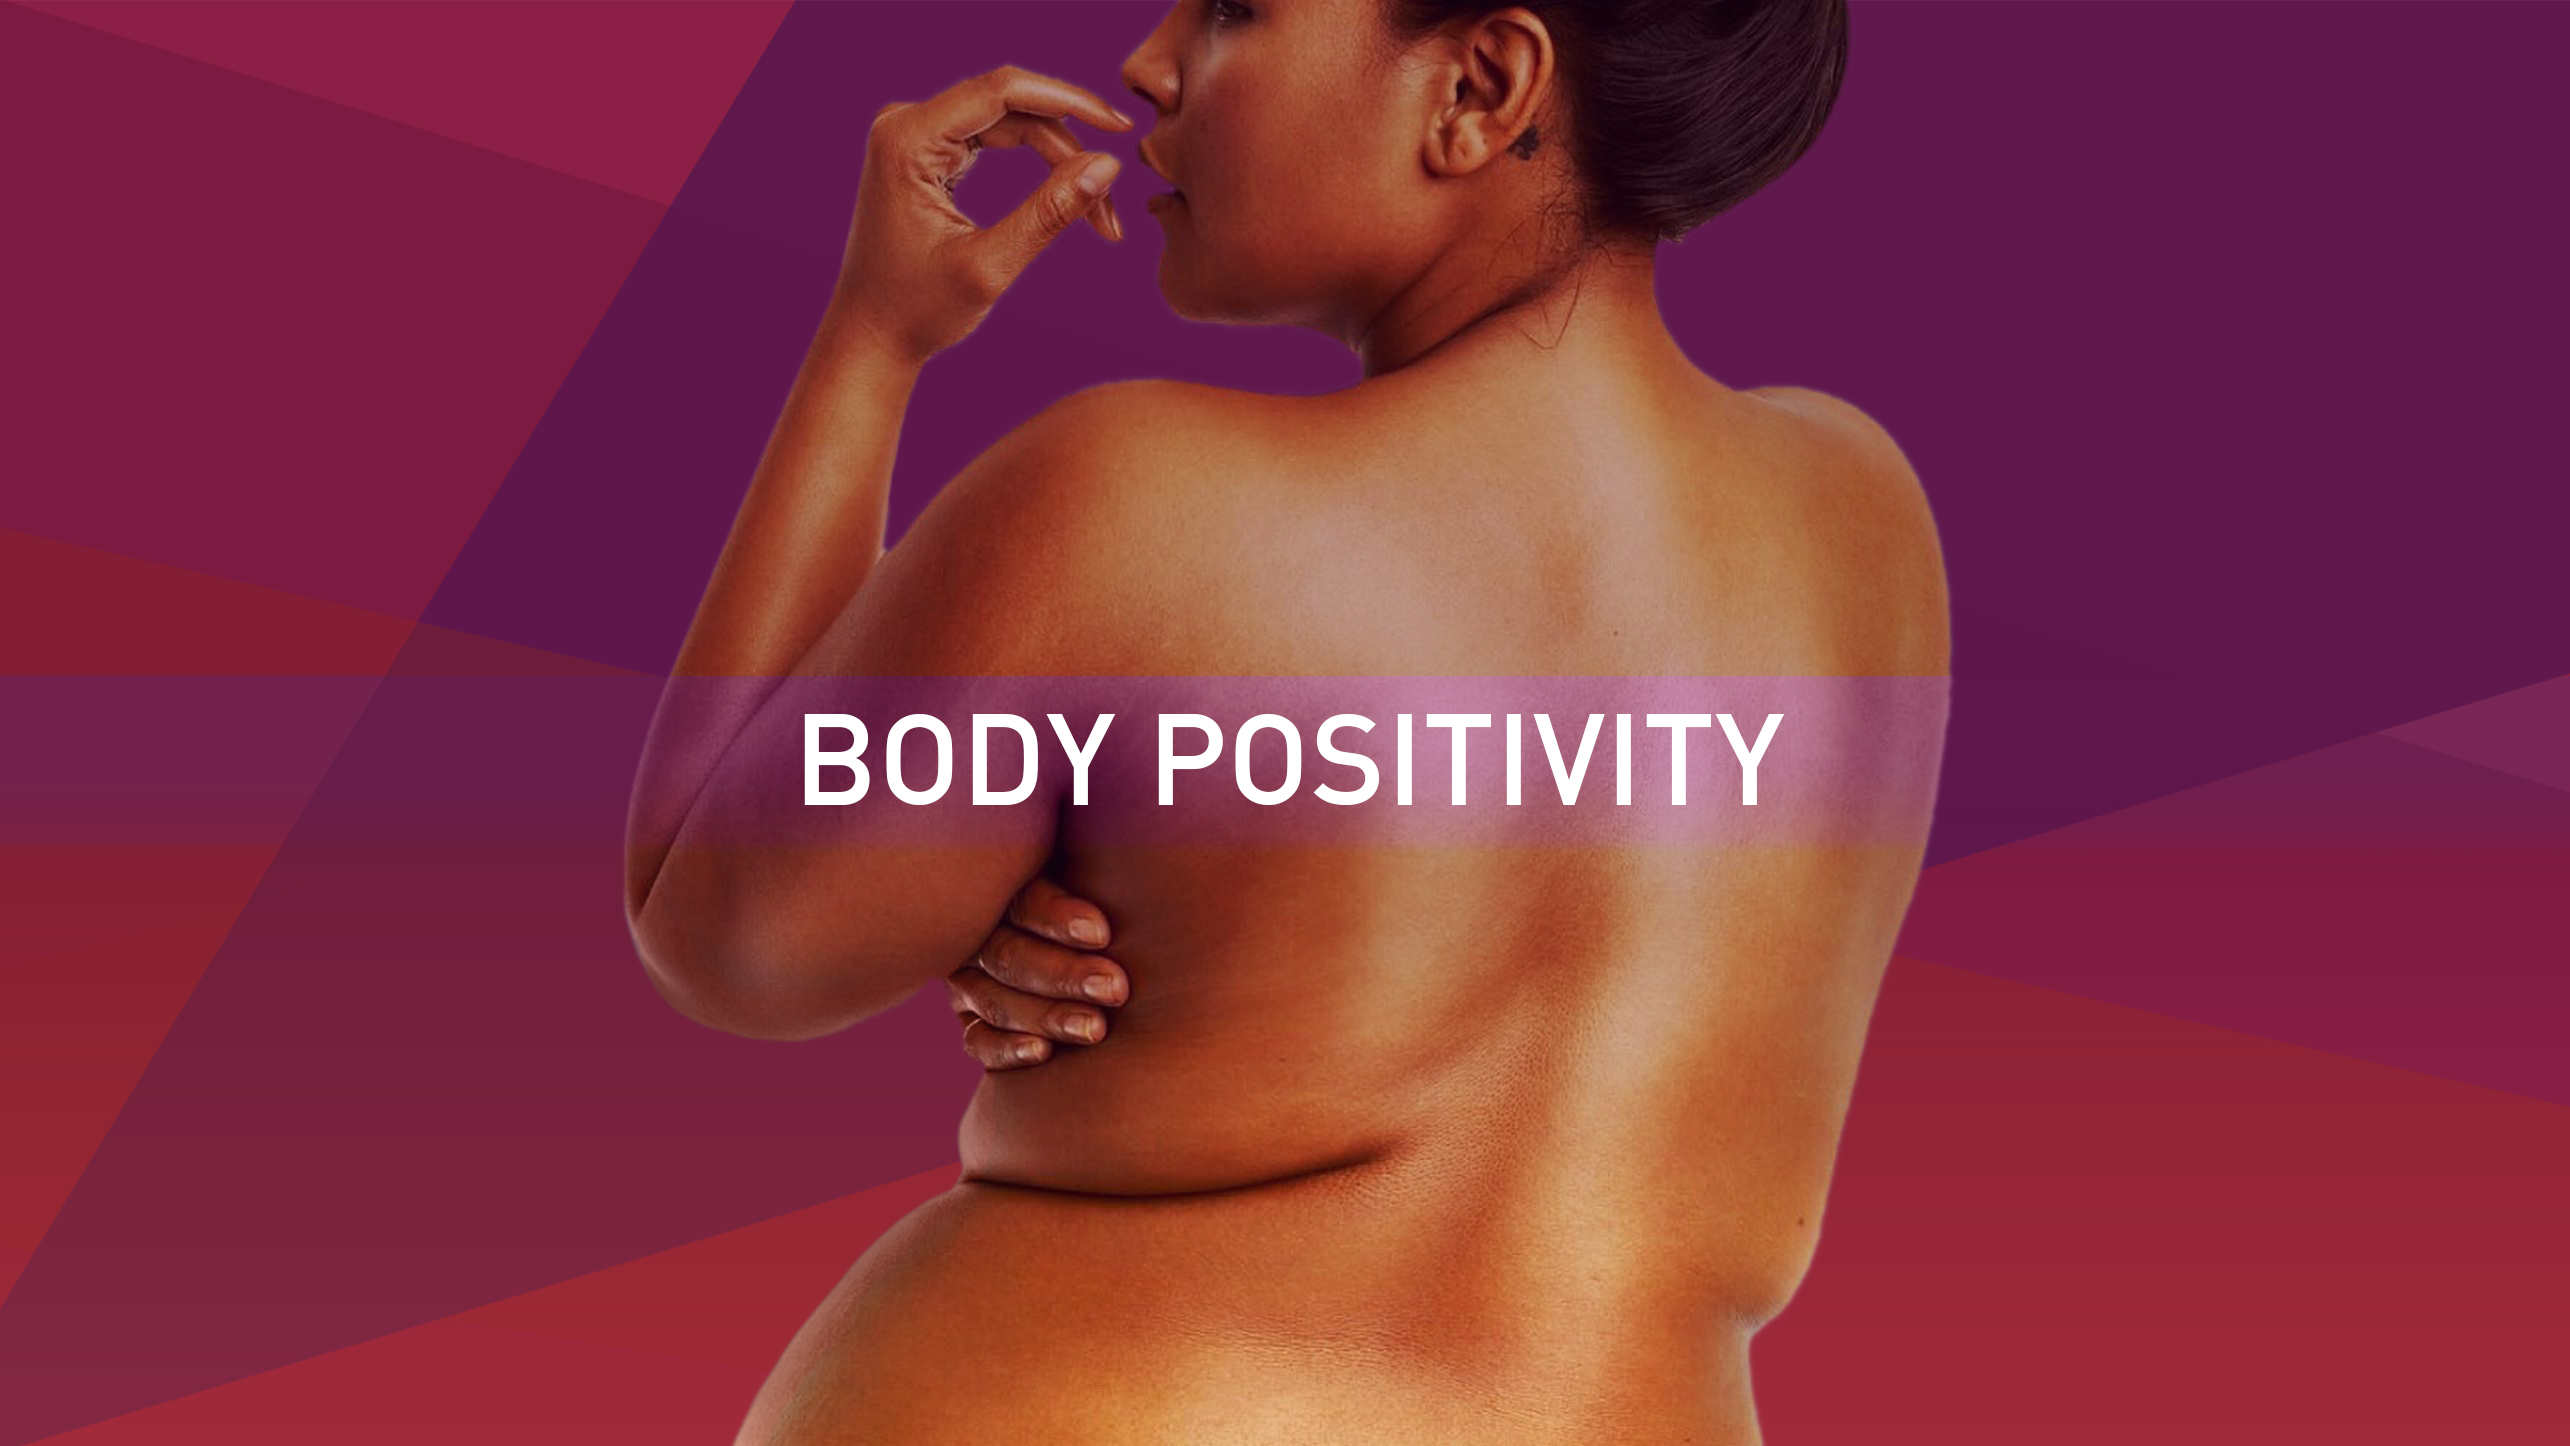 Body Positivity| Libellula Grafica Lab